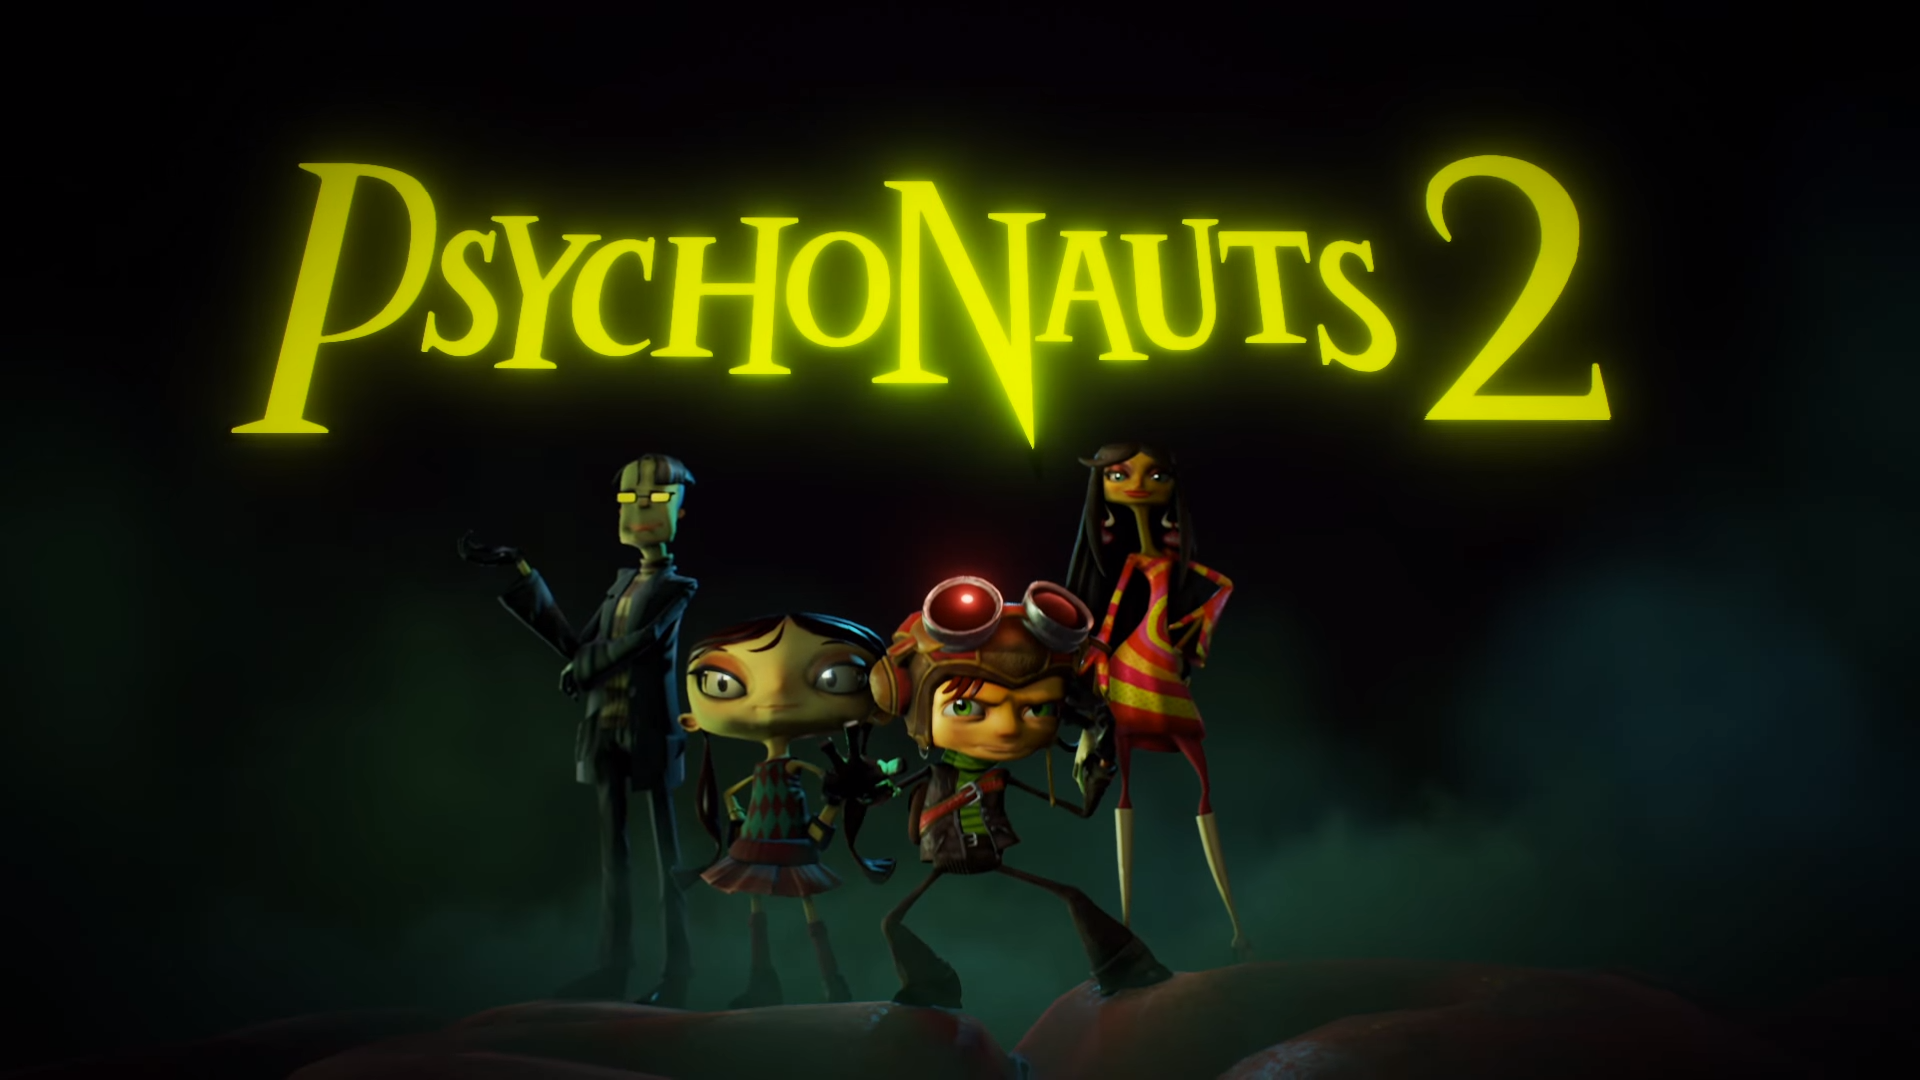 Psychonauts 2 Wallpapers Images Photos Pictures Backgrounds 1920x1080